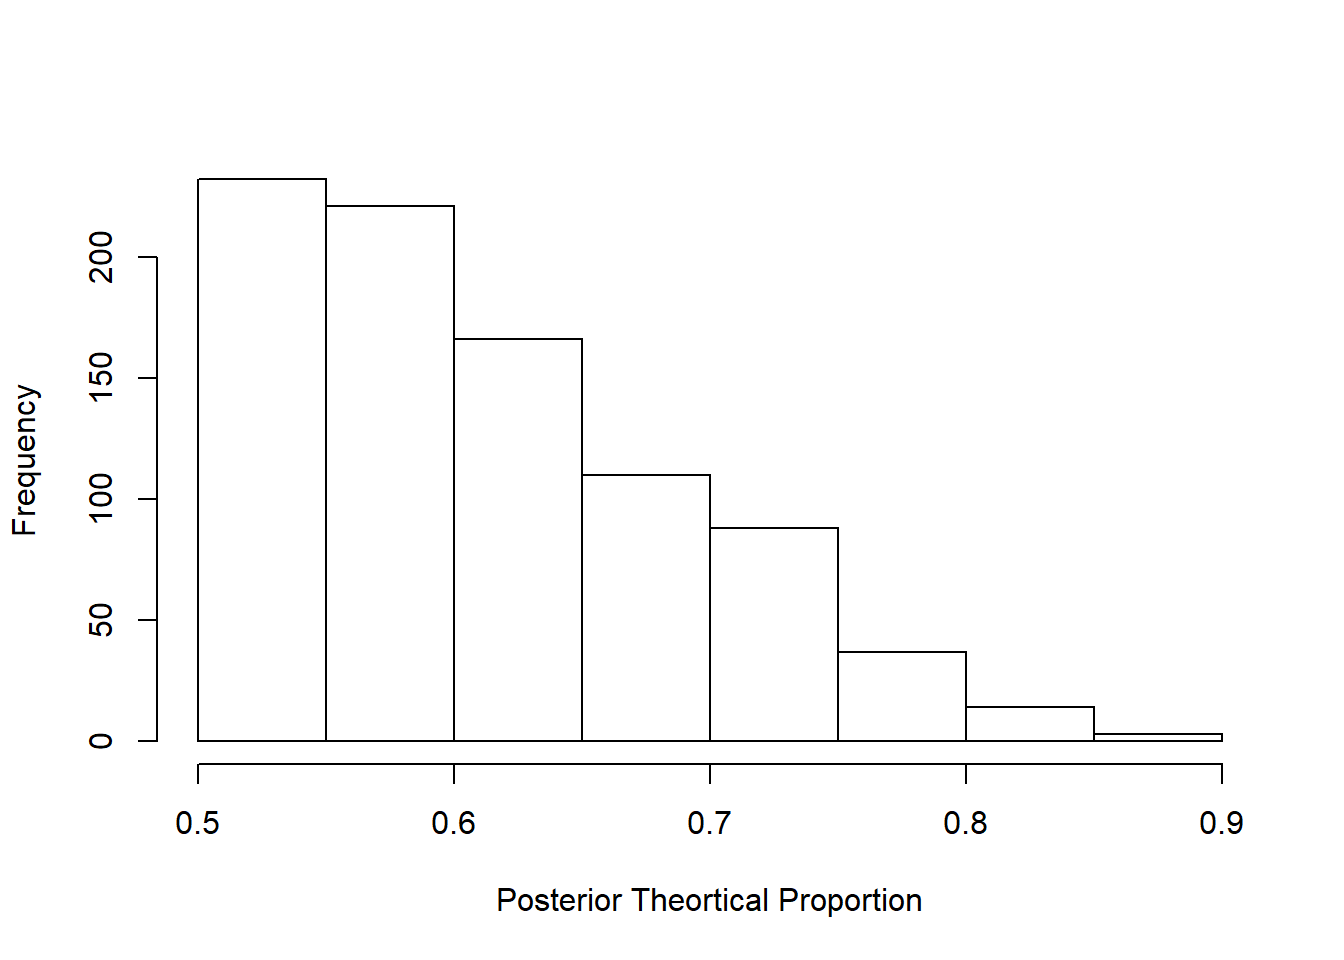 Posterior probability distribution of initial study result